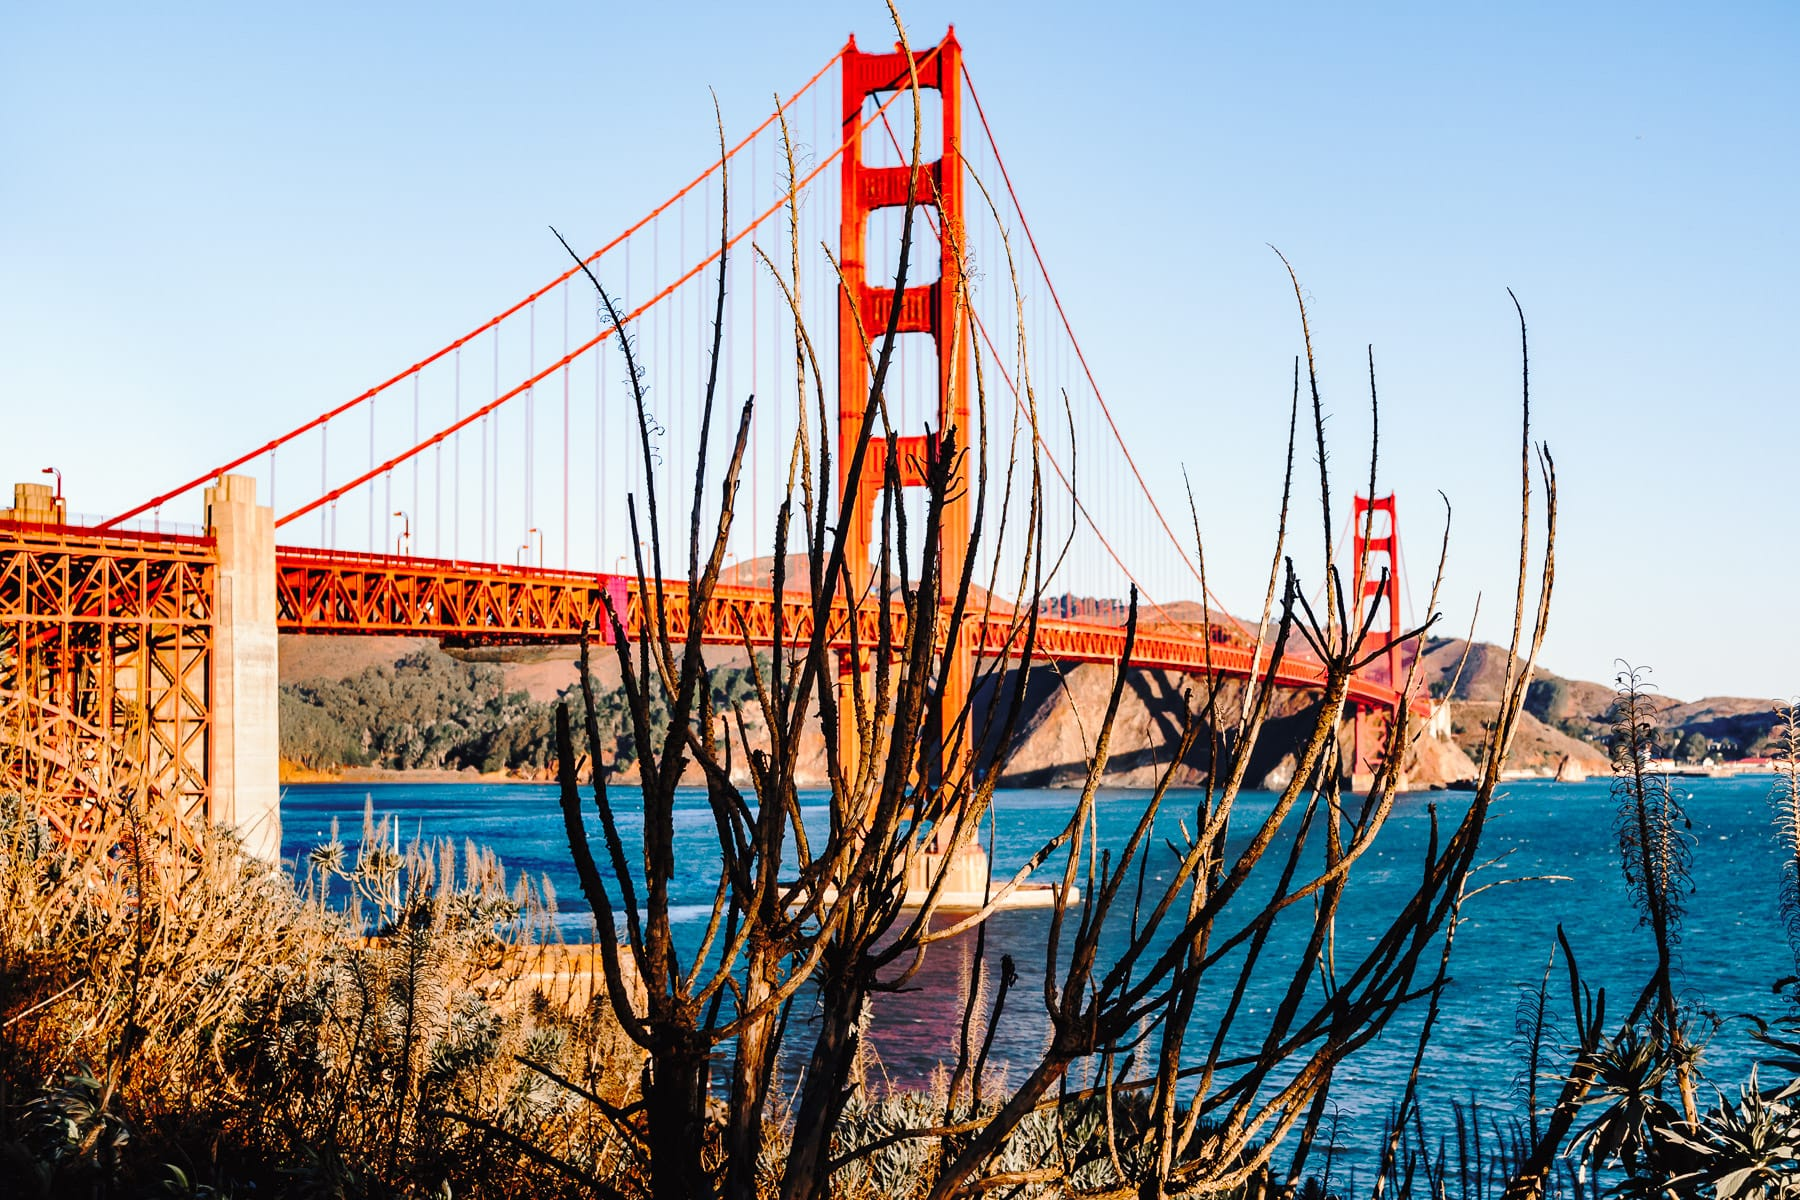 A tree obscures the Golden Gate Bridge, San Francisco.